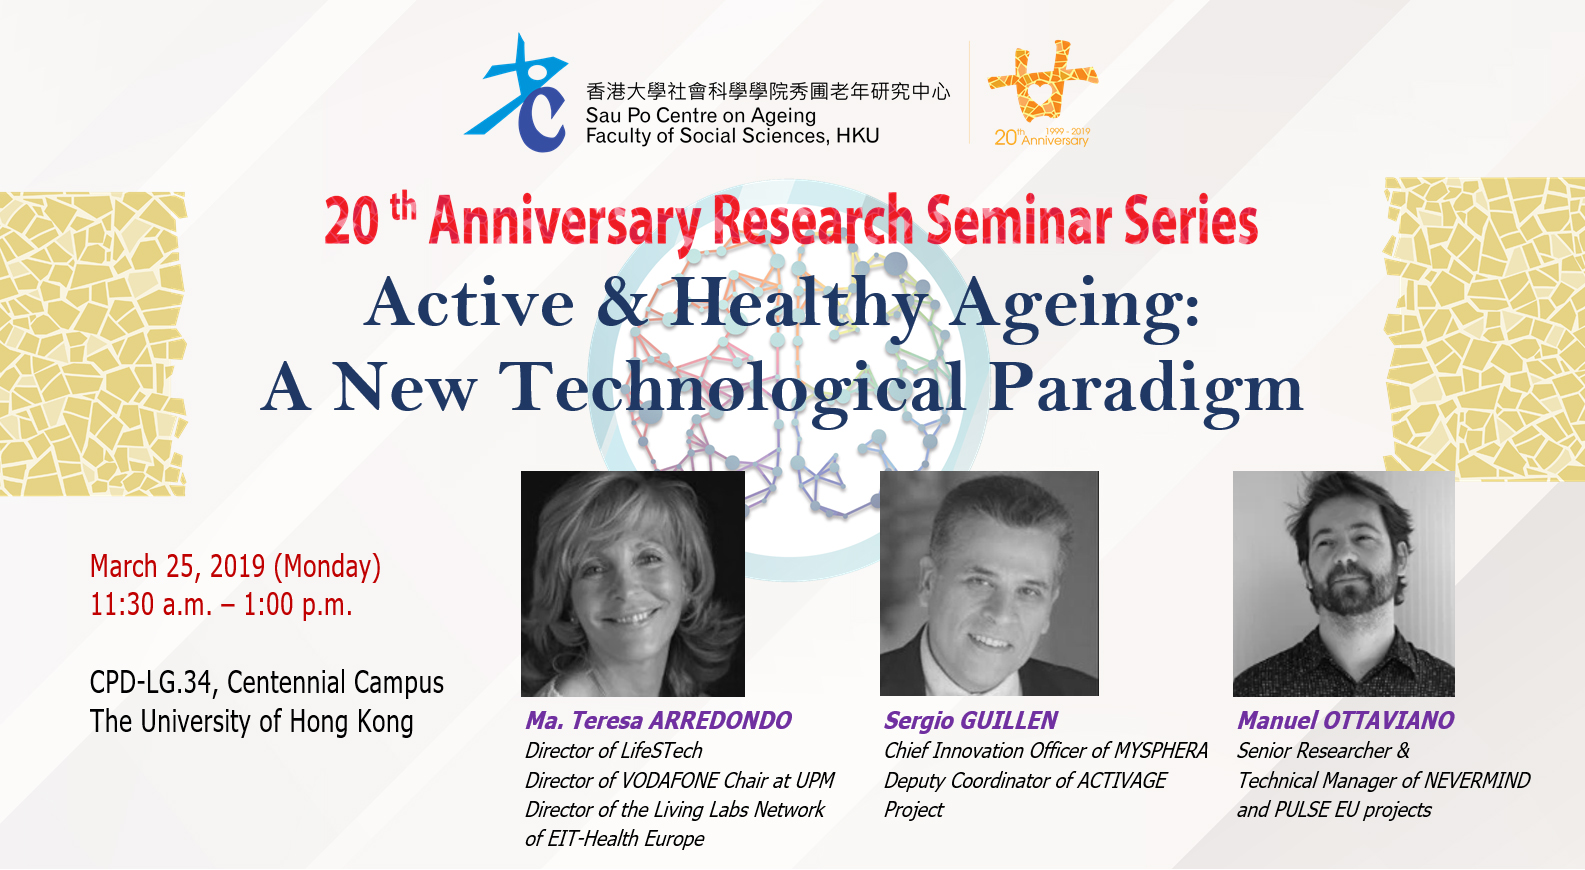 Active & Healthy Ageing: A New Technological Paradigm